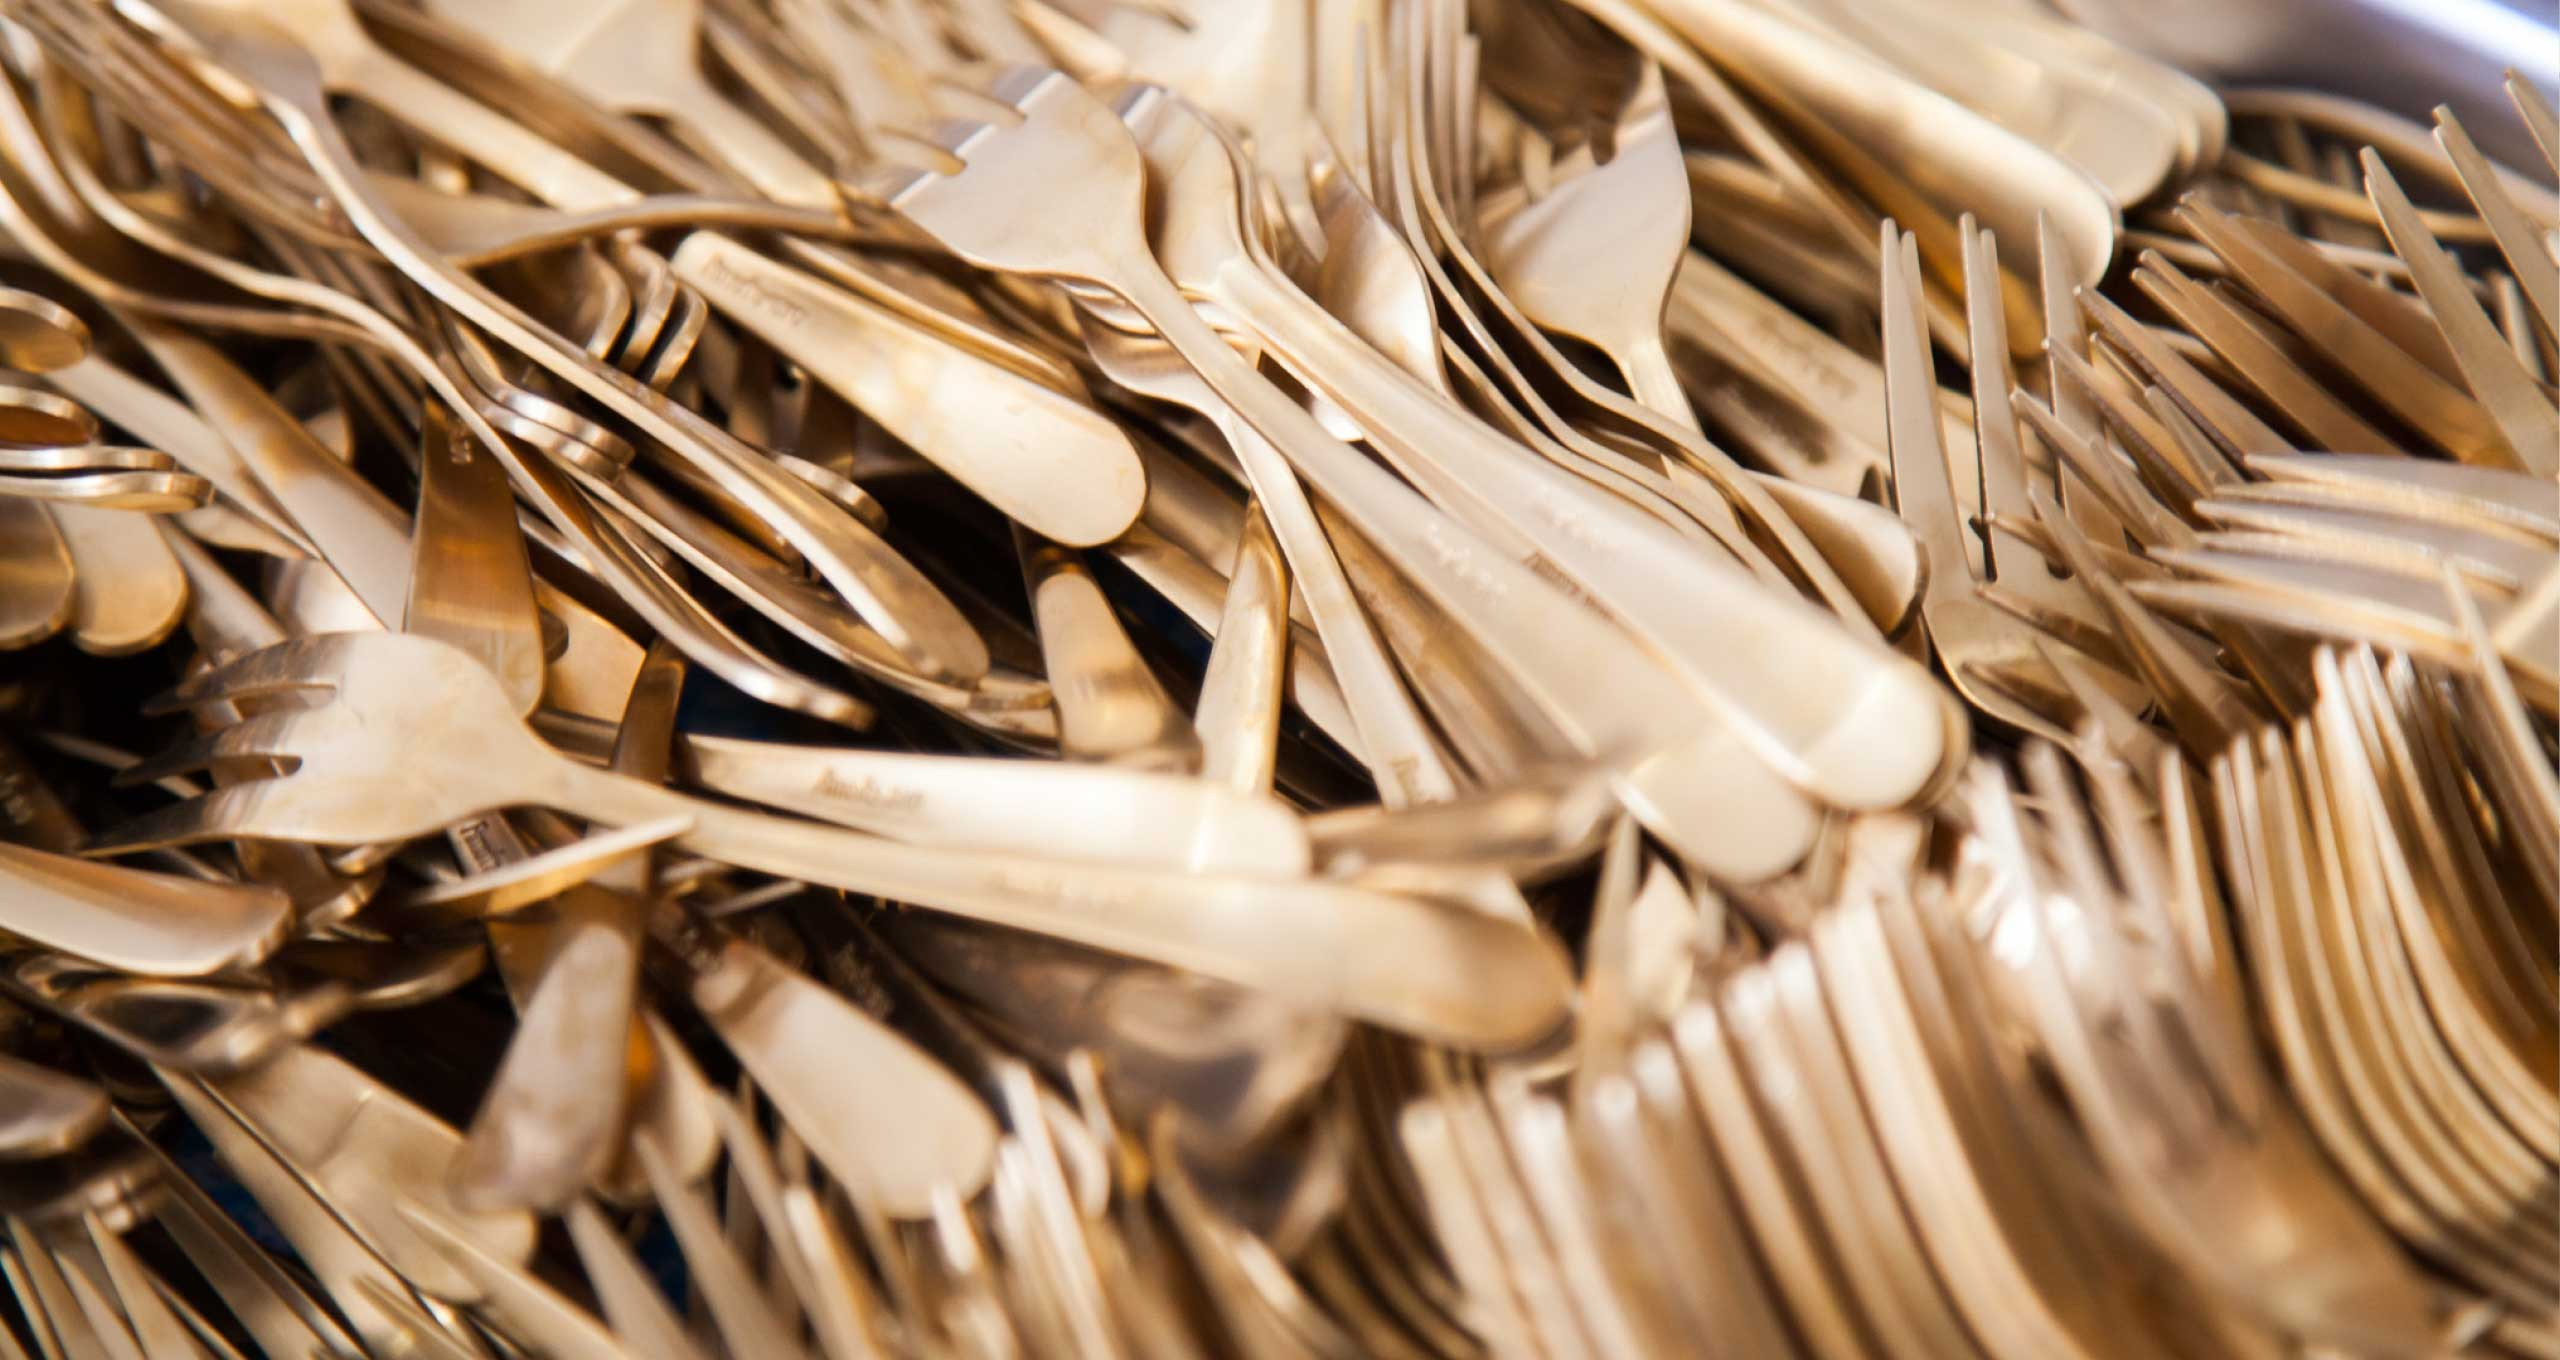 Silverware for private events